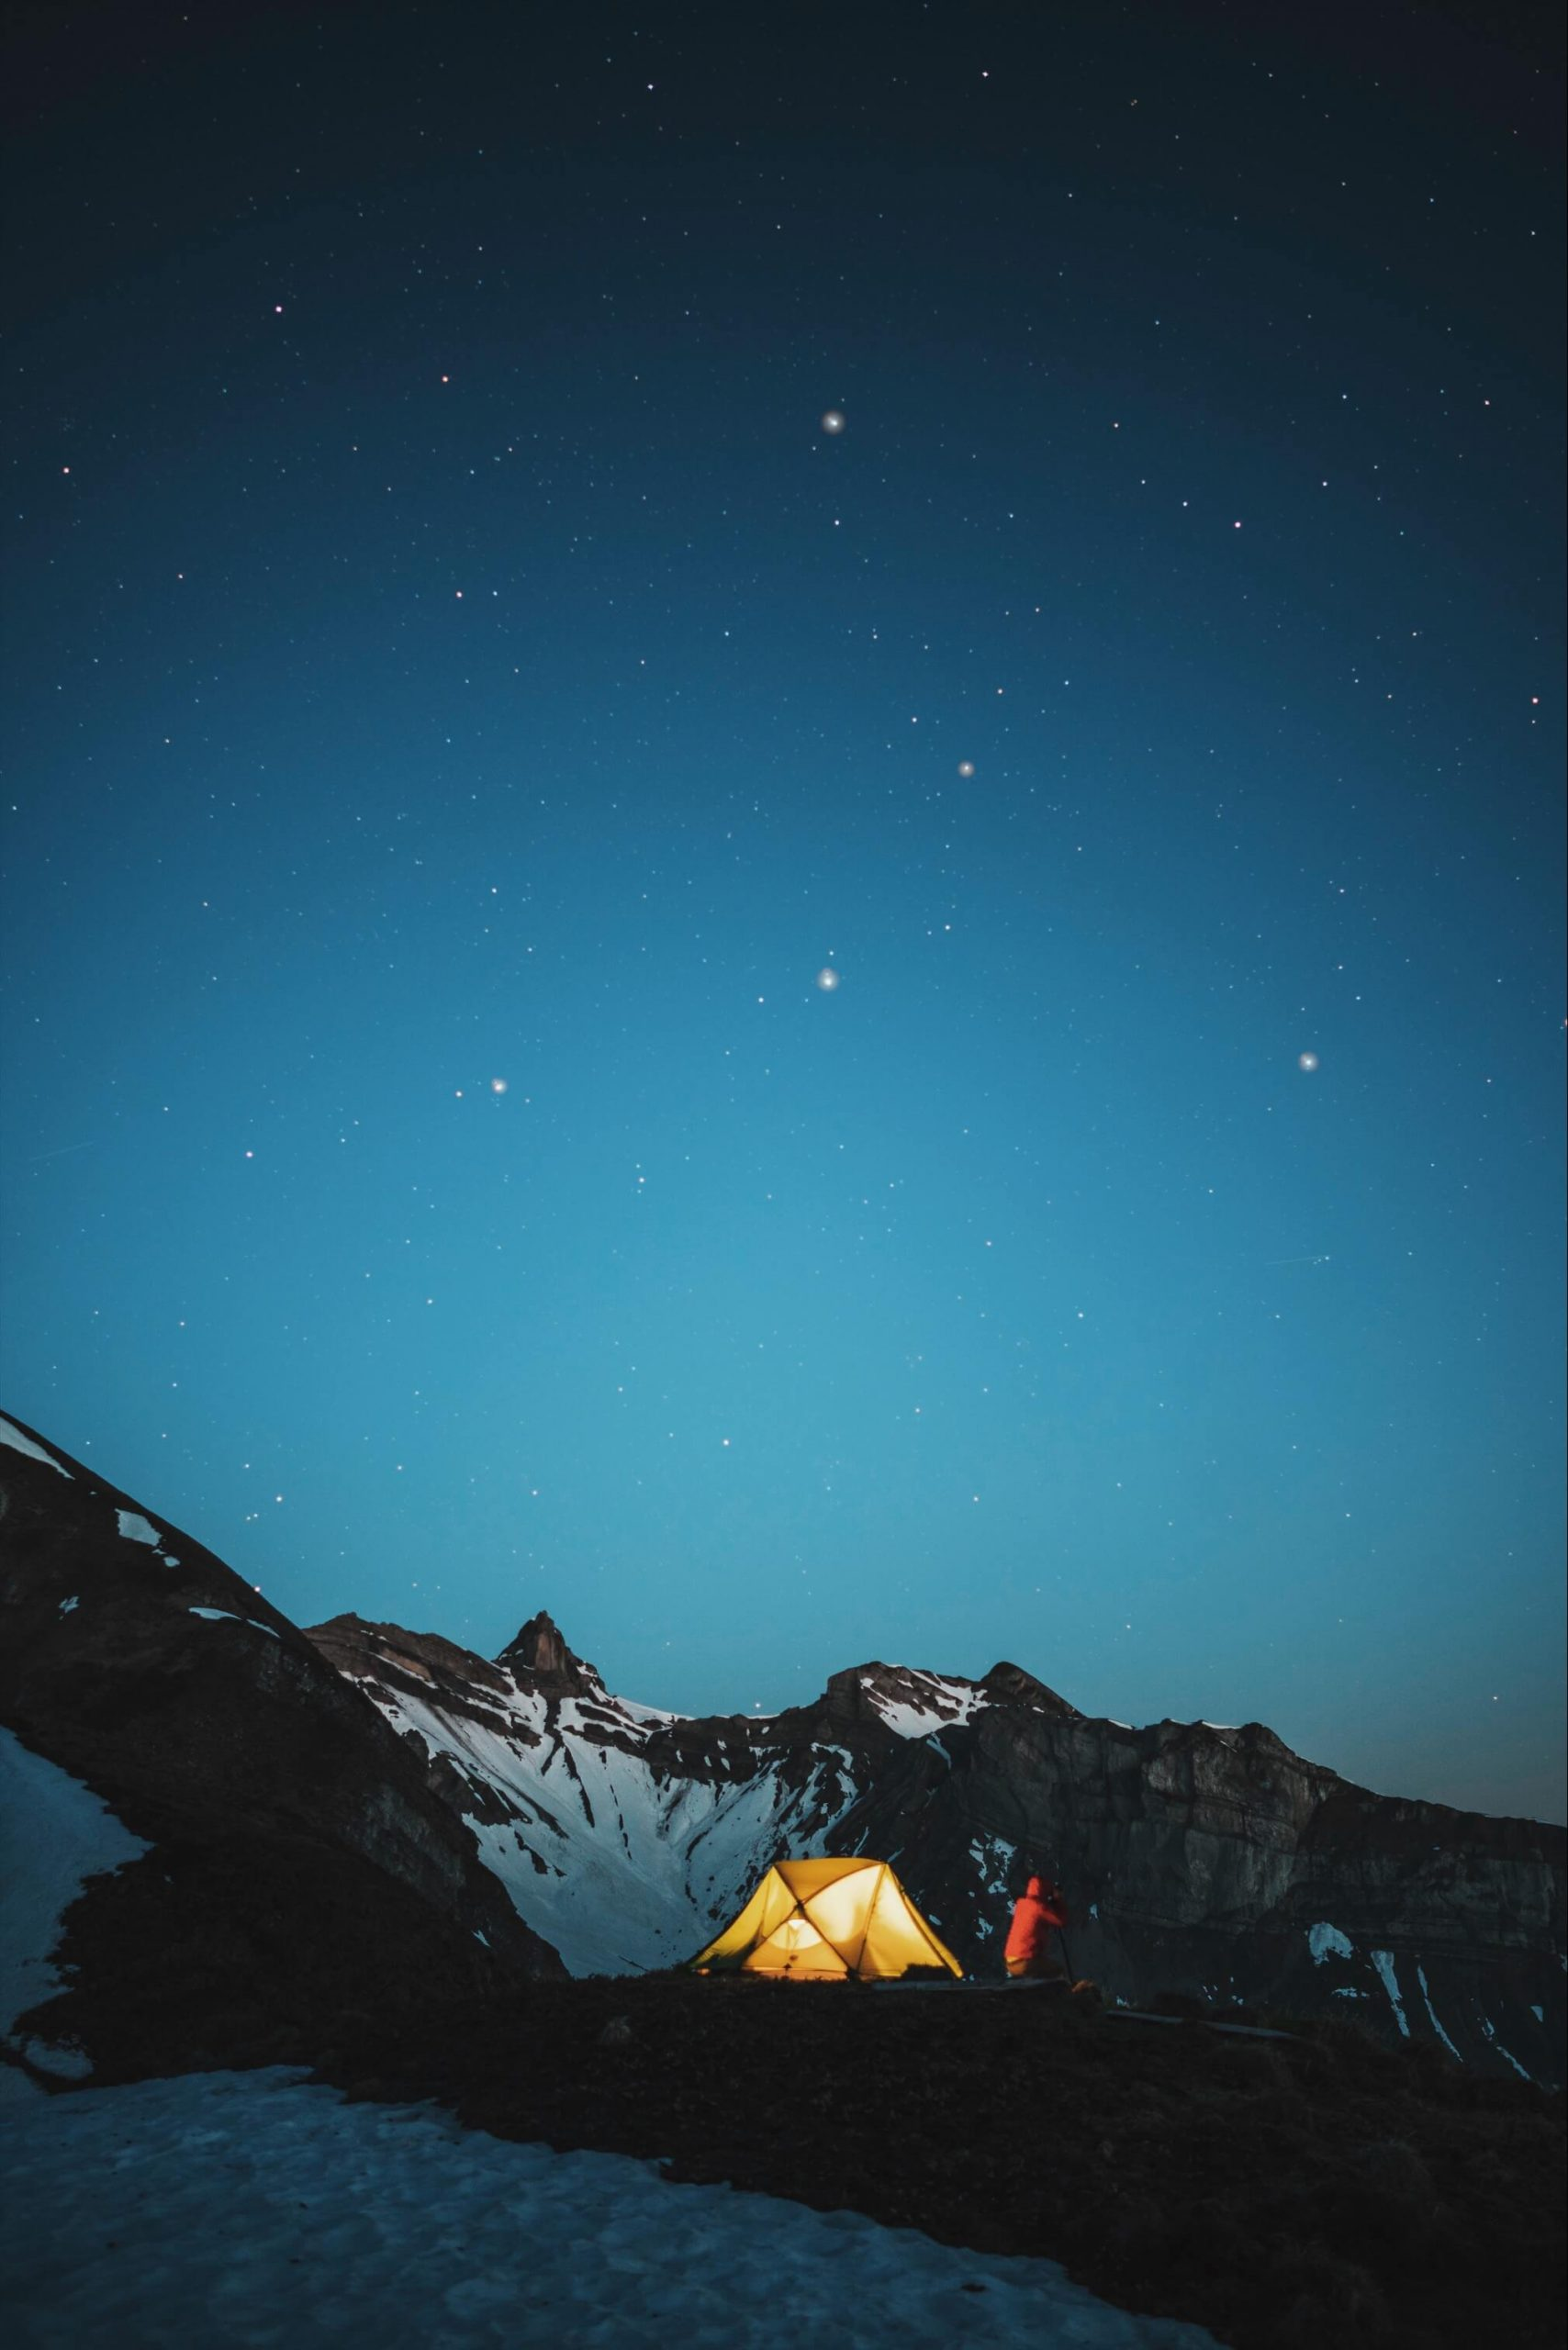 Swiss Alps Camping Backpacking